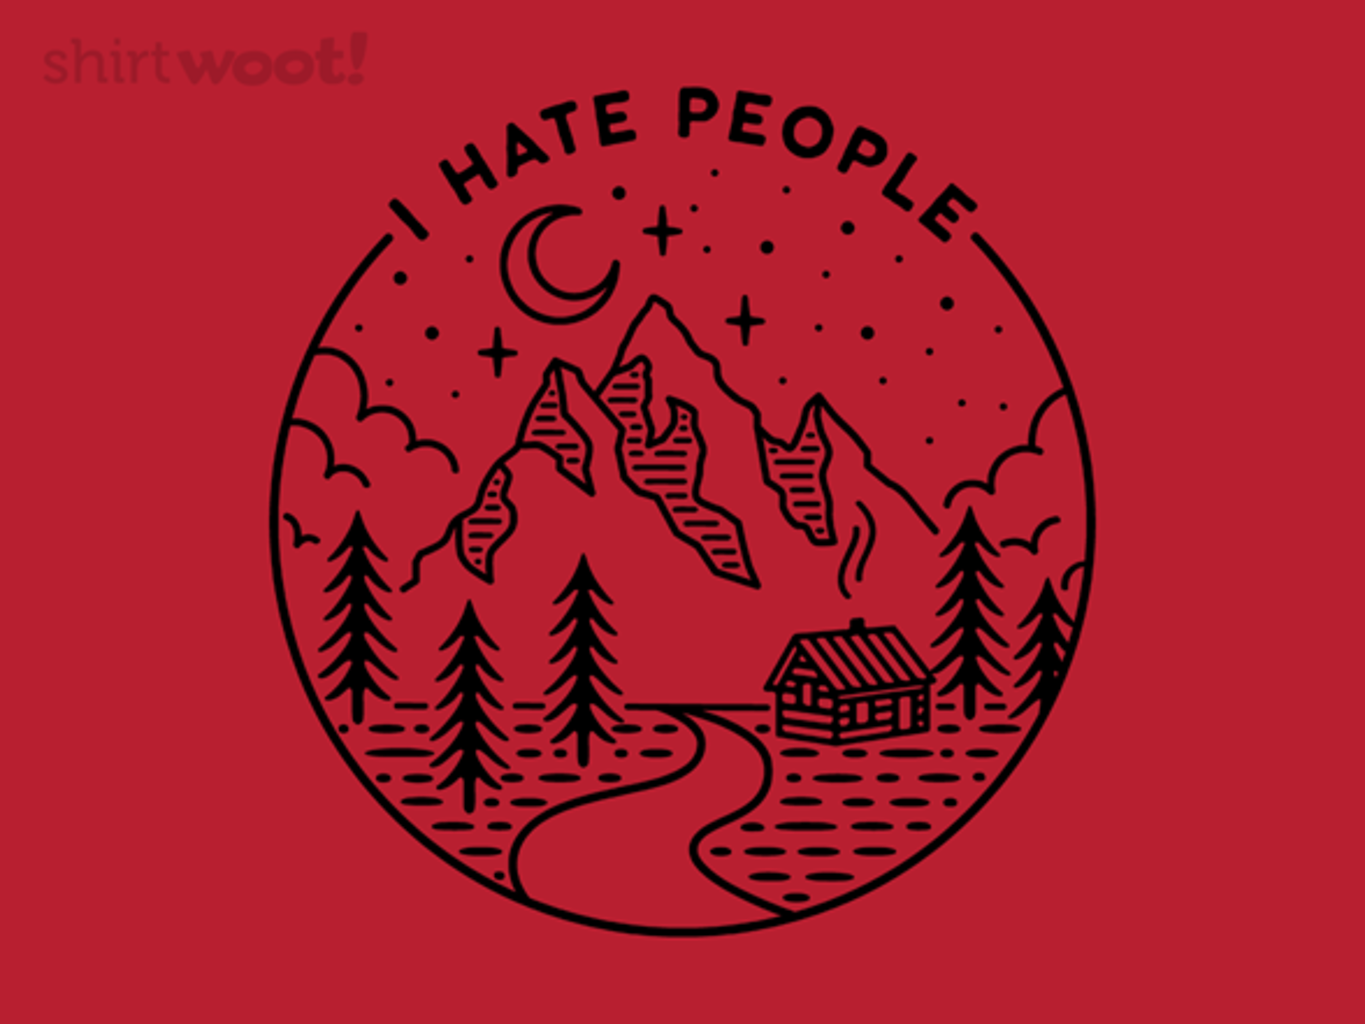 Woot!: I Hate People